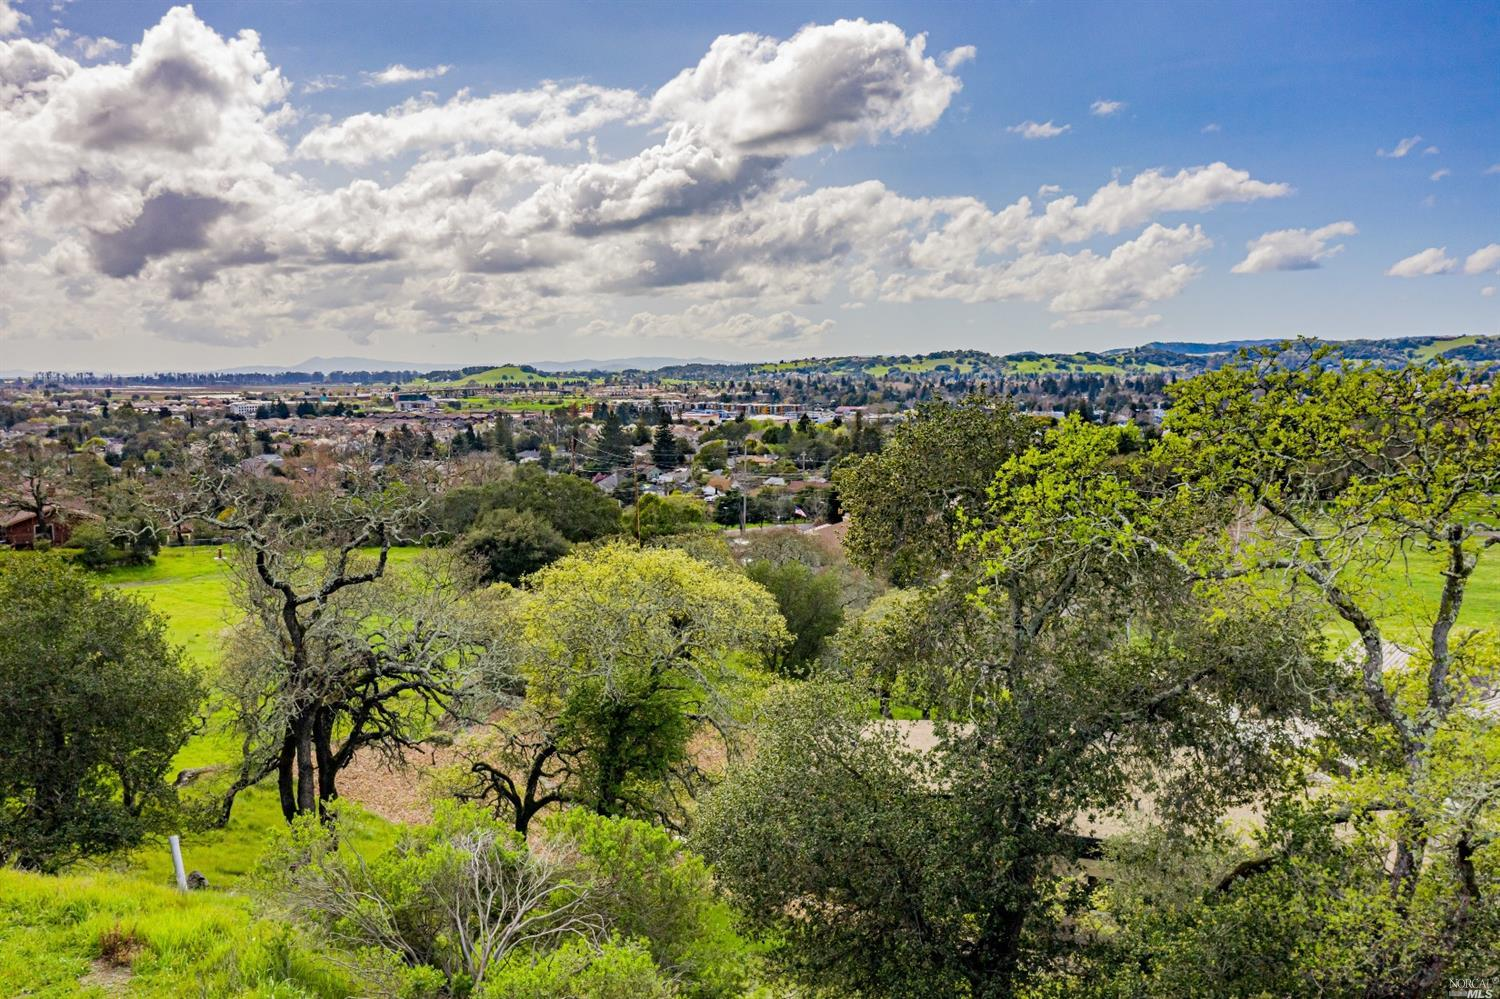 This world class development offering is suitable for a luxury home within city limits. The west facing views take in magnificent sunsets, glimmering city lights, and the distant mountains and watershed. One of the largest elevated lots available in the desirable enclave of Hidden Glen, the parcel offers over 0.34+/- acre of prime buildable land and is moments from Downtown Napa. When visiting, one would immediately notice the peace and tranquility the land exudes. The location grants a country feel with no through traffic. Bedrock elements and mature oak trees make this a true rare find. Plans are available to a buyer looking for ease of planning.